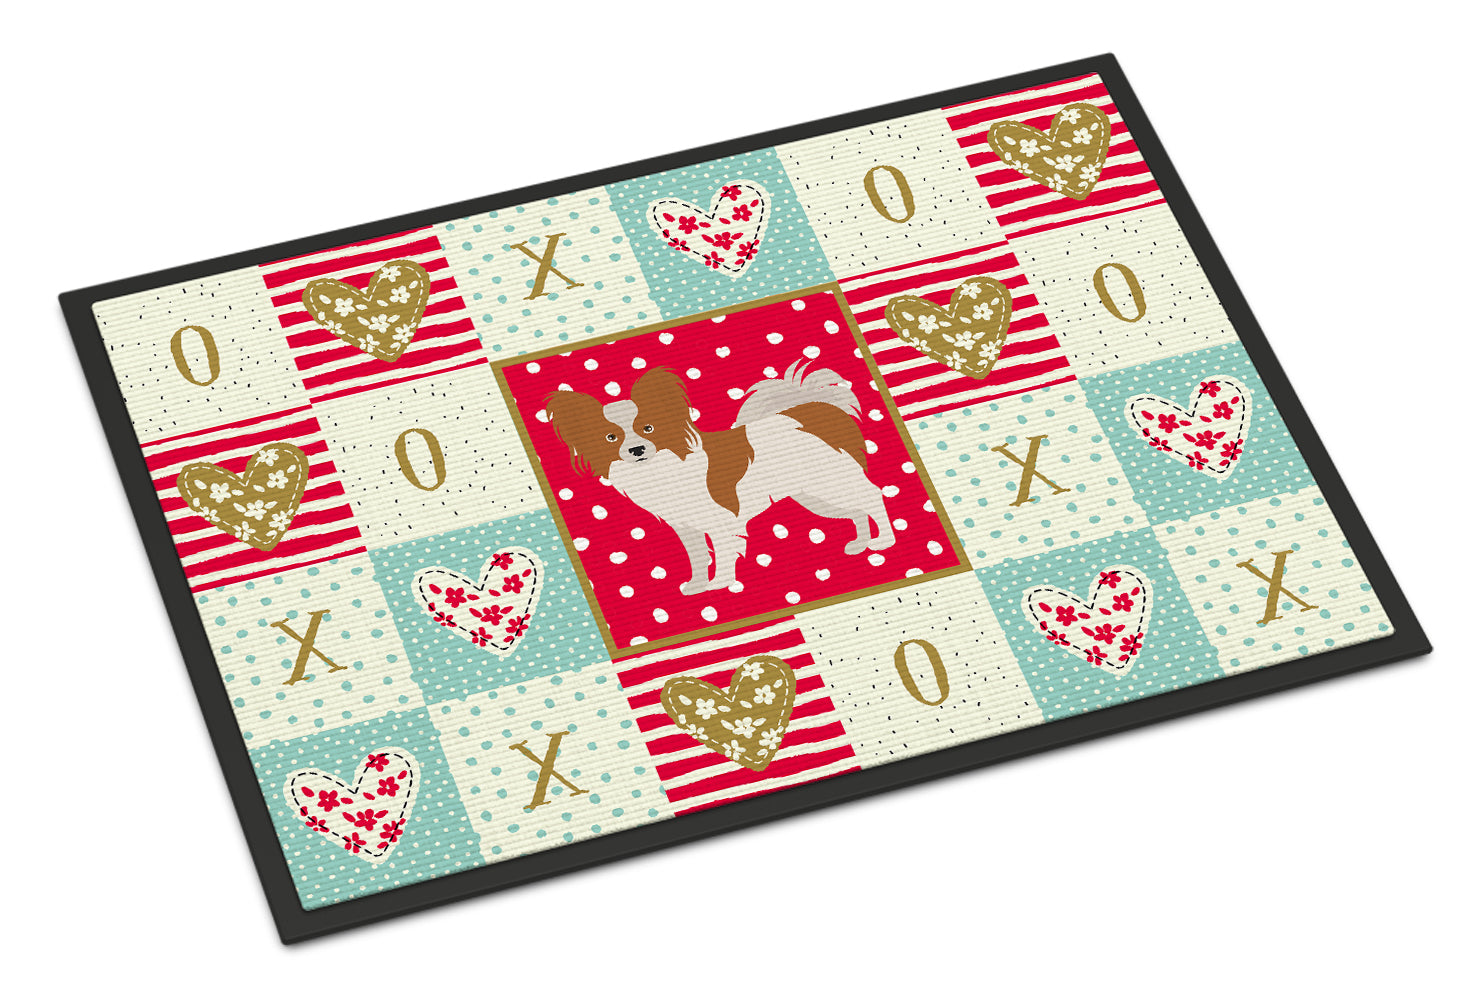 Papillon #1 Love Indoor or Outdoor Mat 18x27 CK5871MAT by Caroline's Treasures